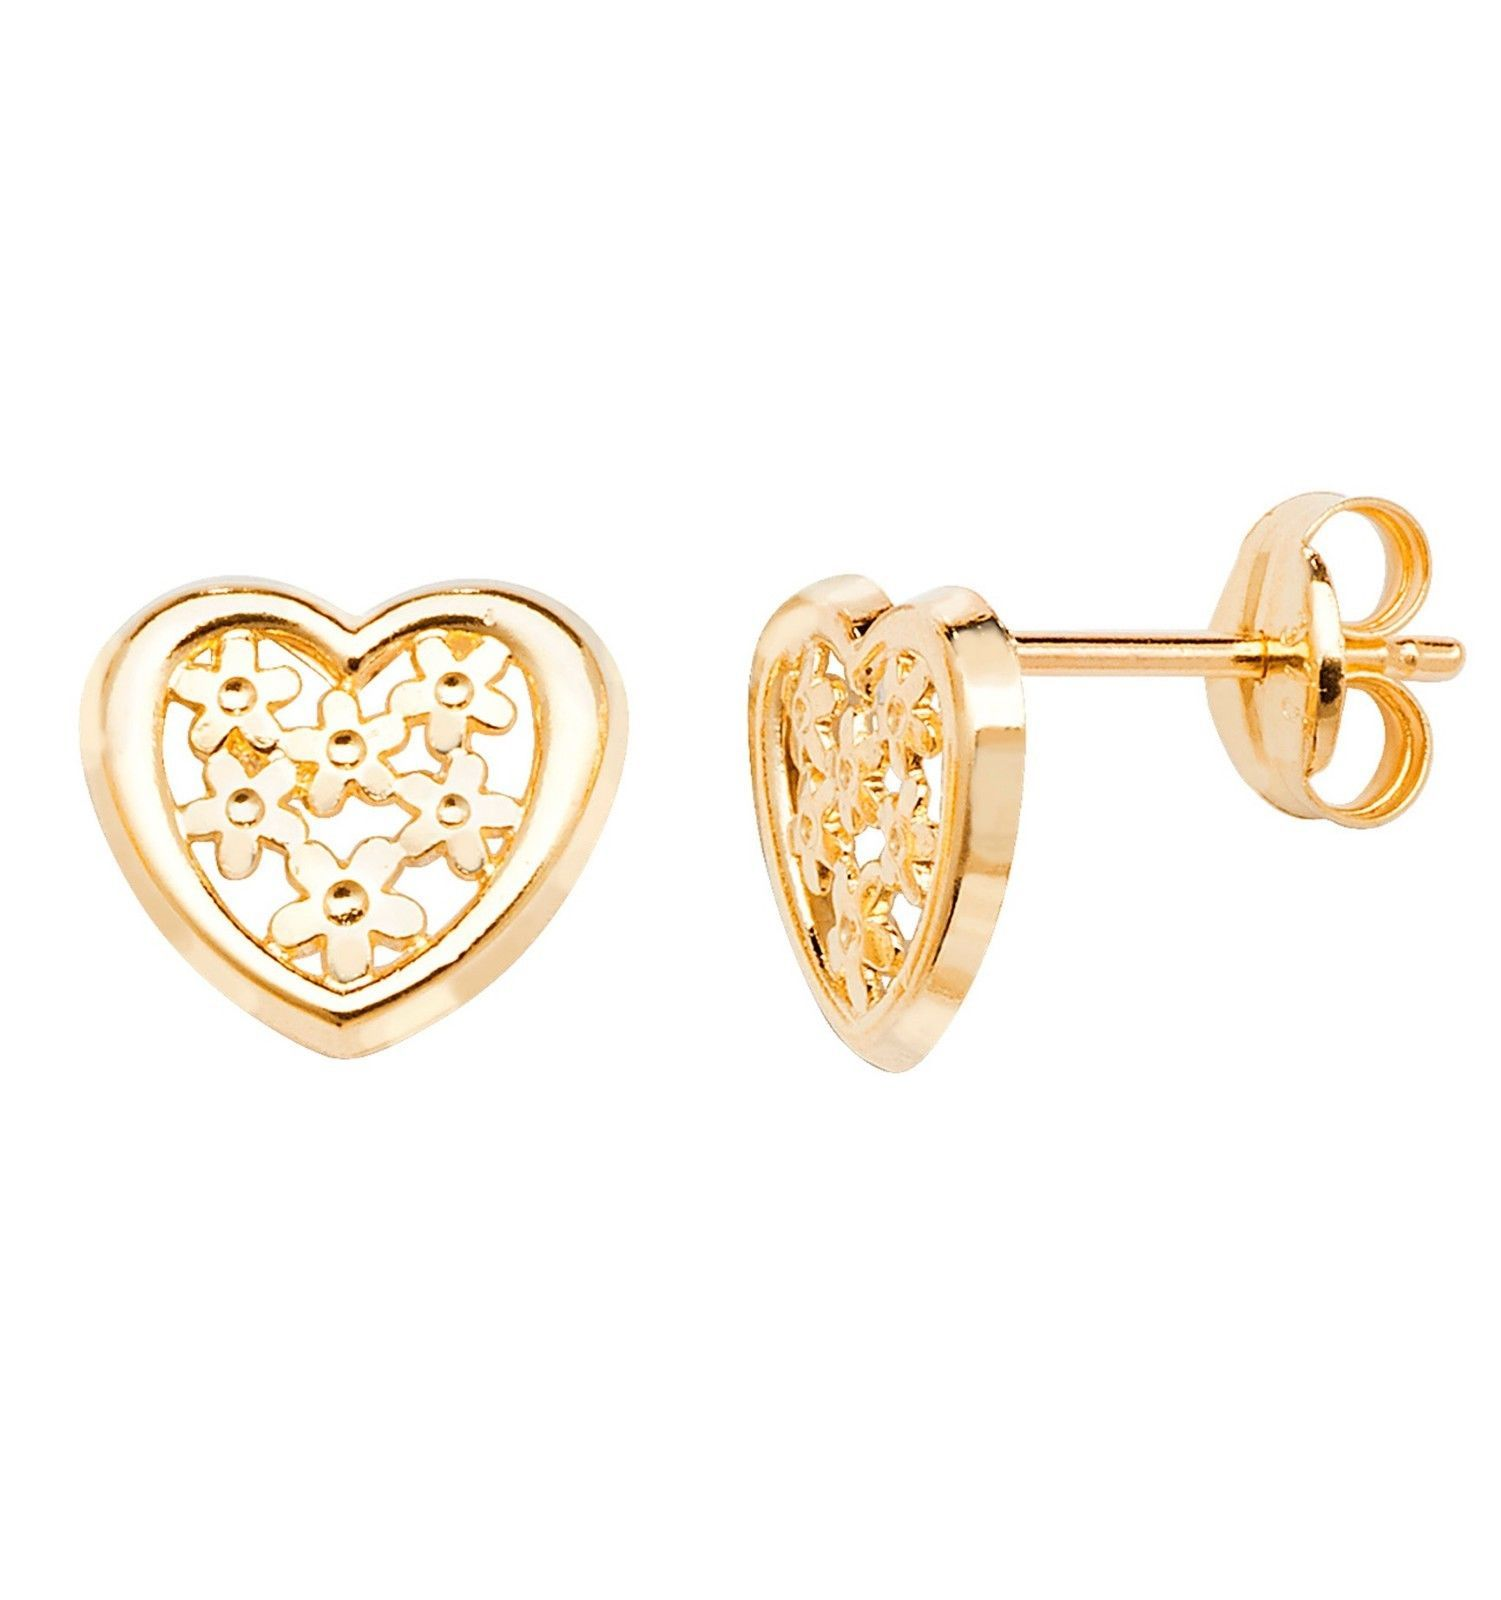 clef in products music earrings and stud heart bass gold lovers treble shaped